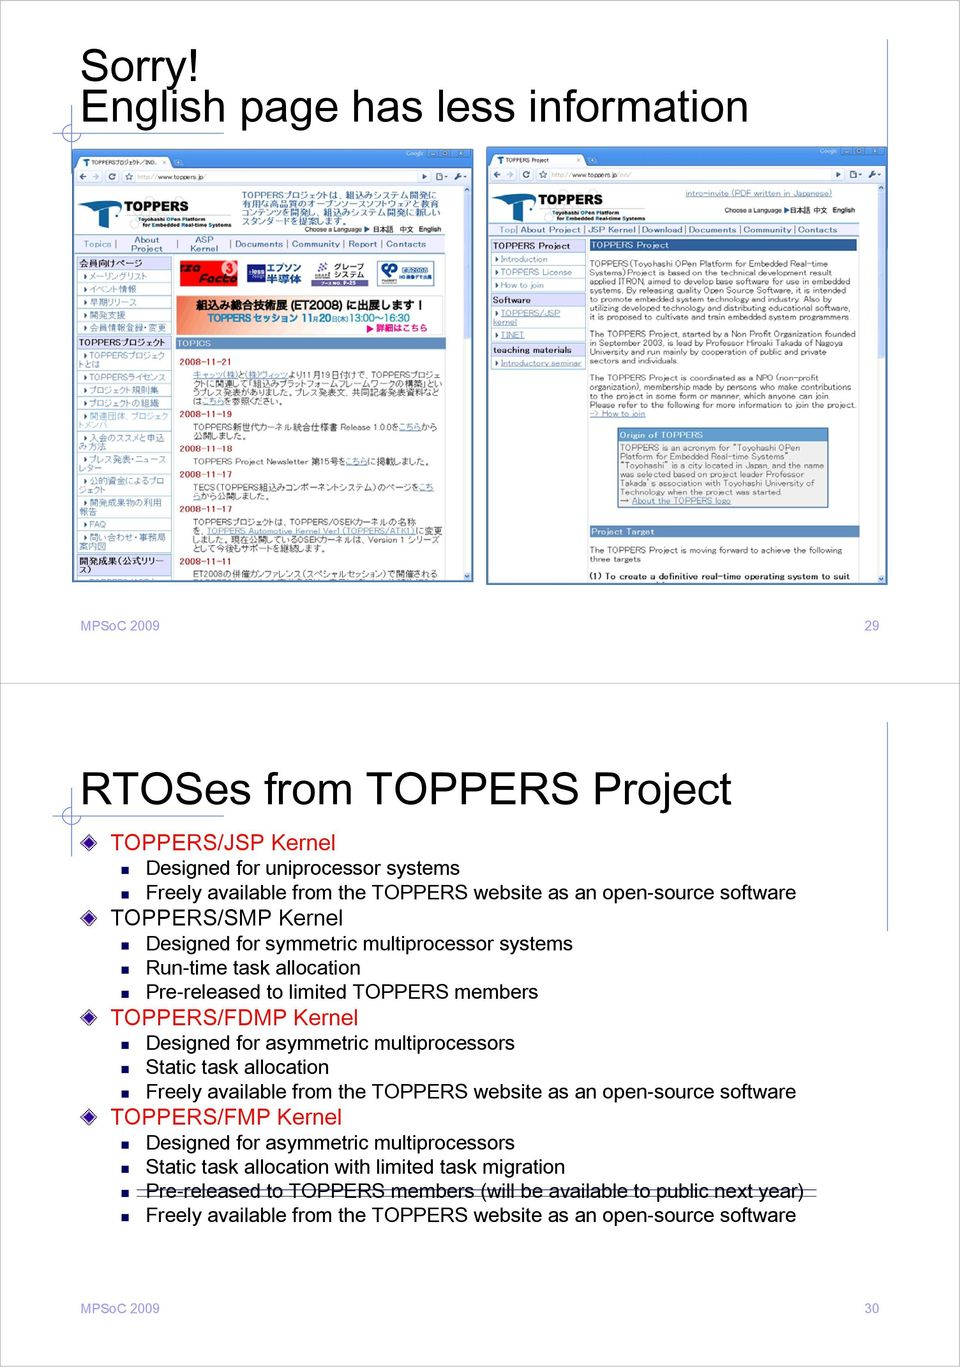 open-source software TOPPERS/SMP Kernel Designed for symmetric multiprocessor systems Run-time task allocation Pre-released to limited TOPPERS members TOPPERS/FDMP Kernel Designed for